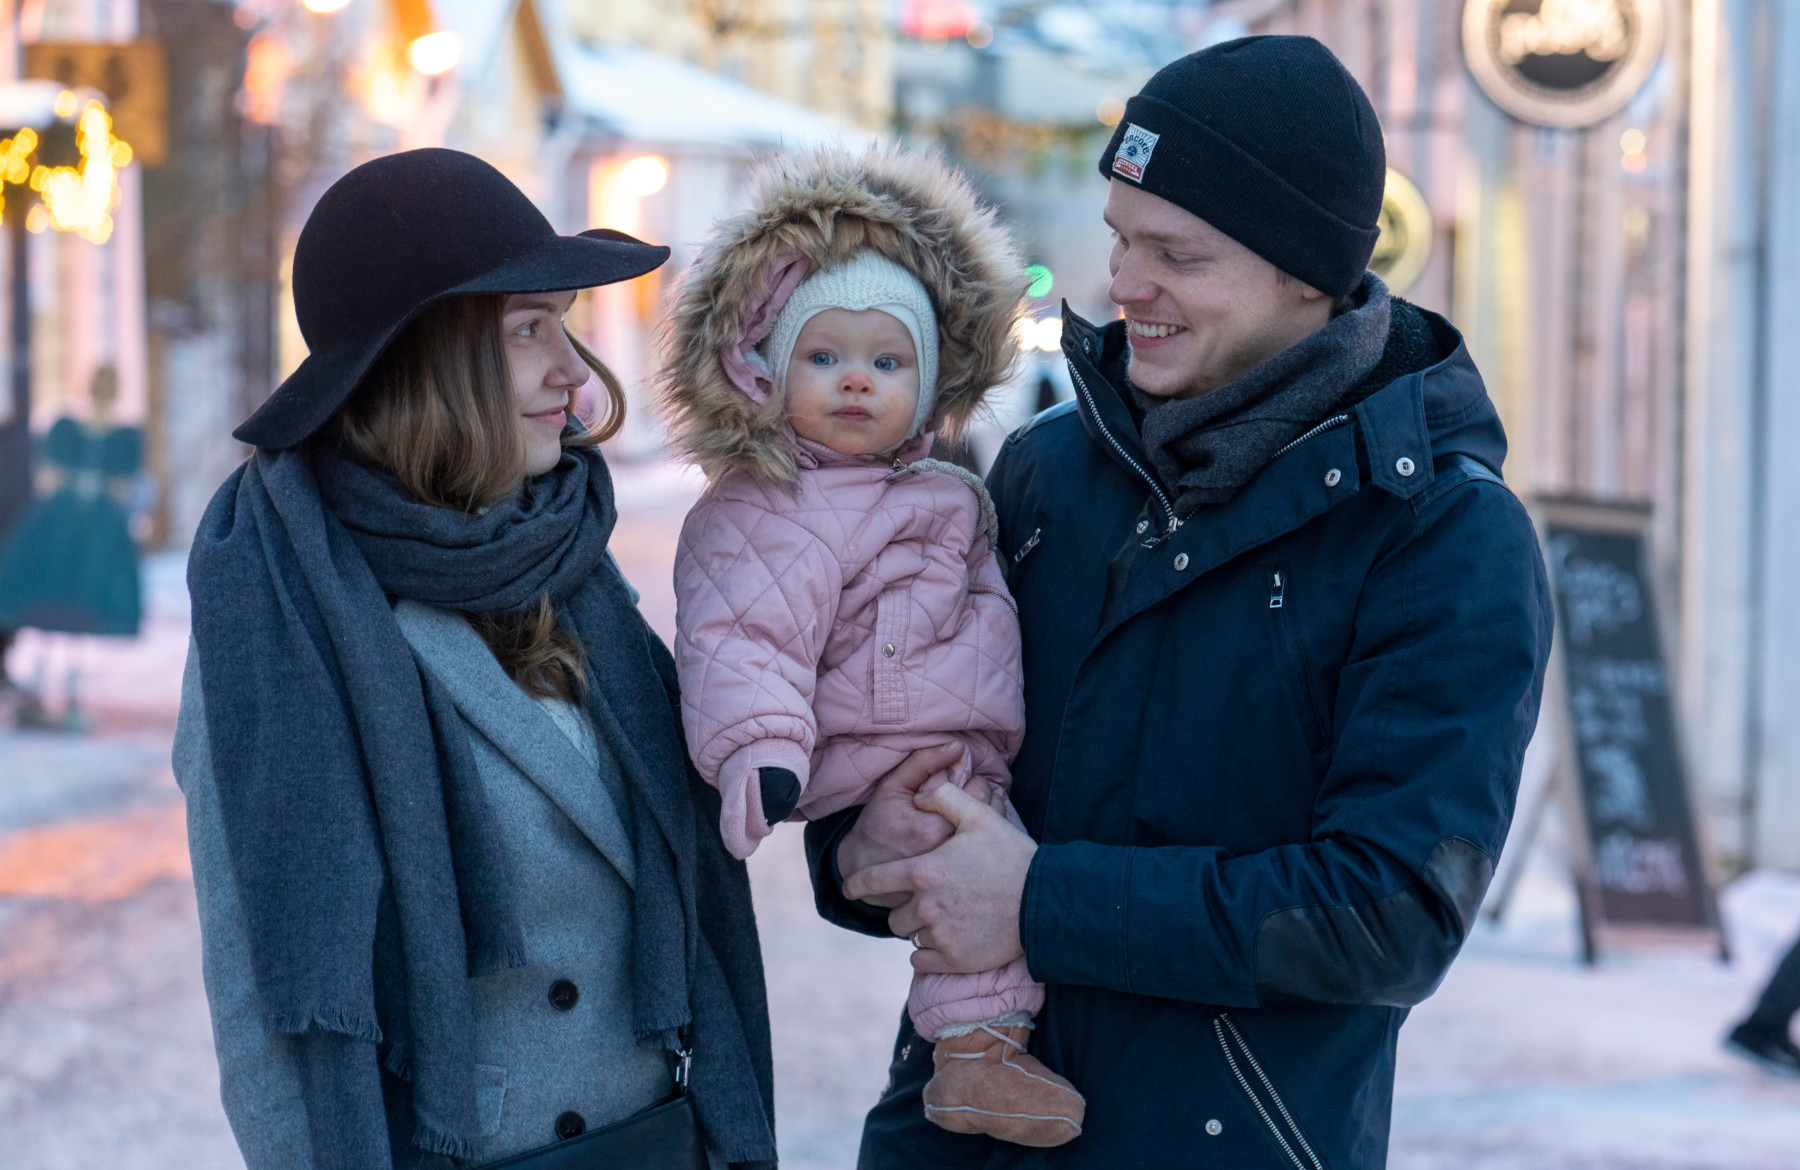 A happy family of three standing outside on the street in wintertime